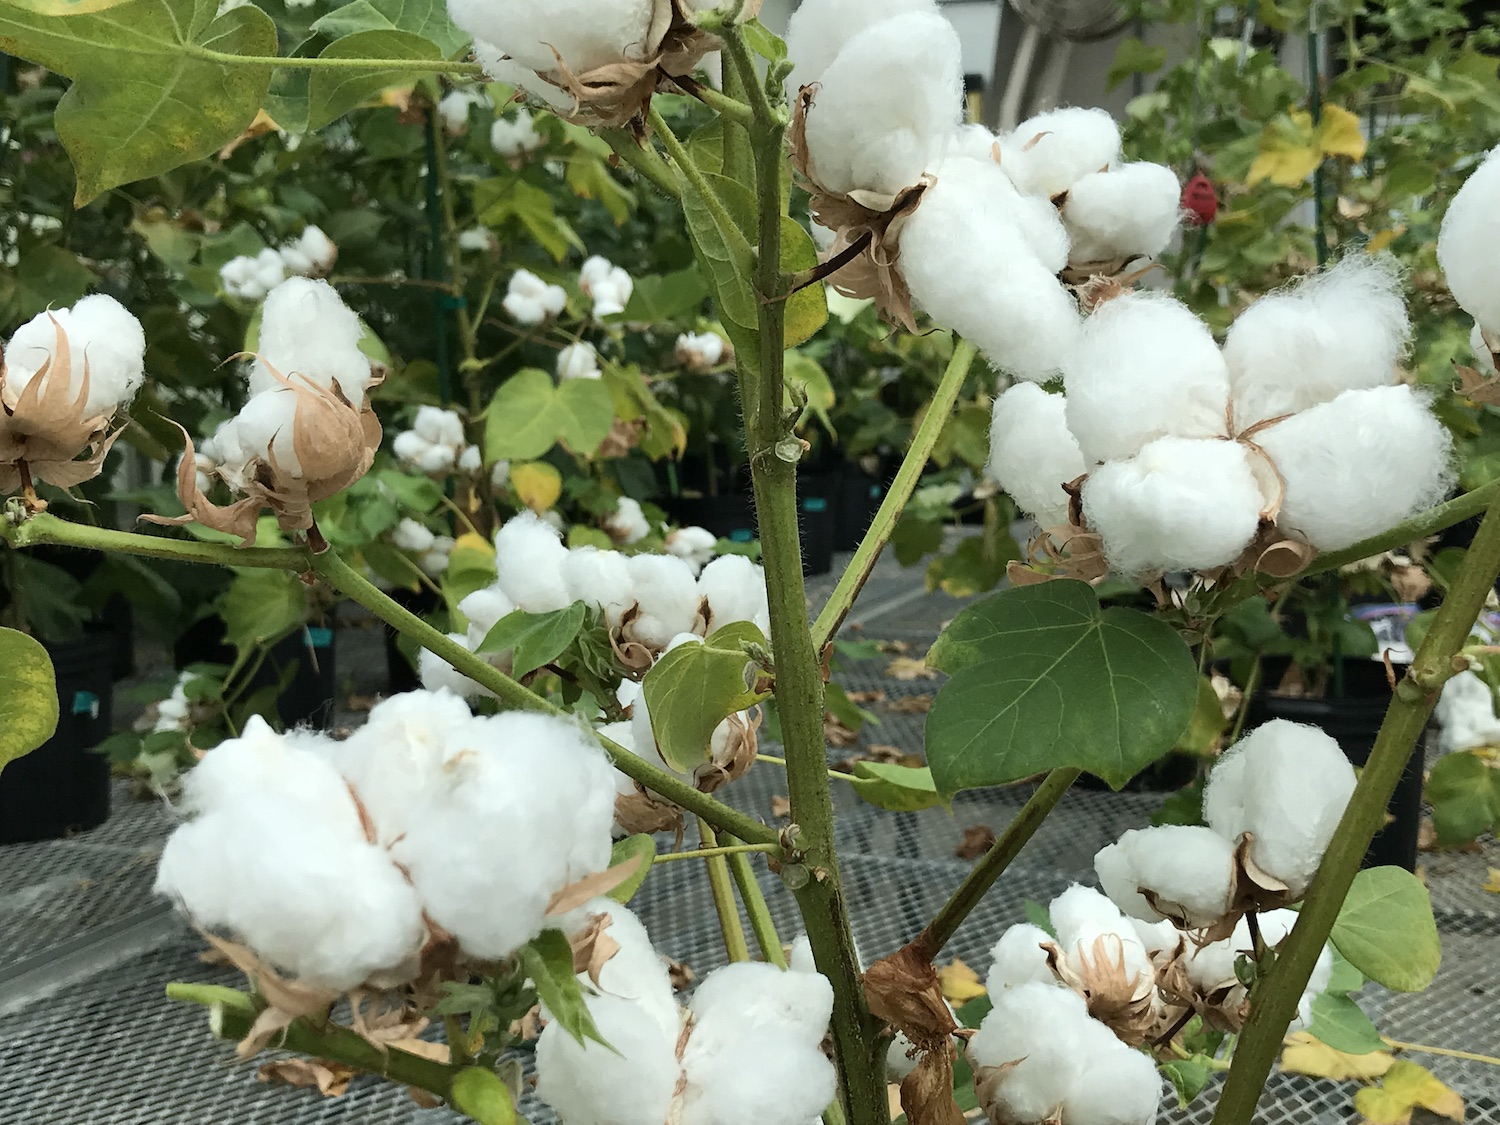 Cotton bulbs